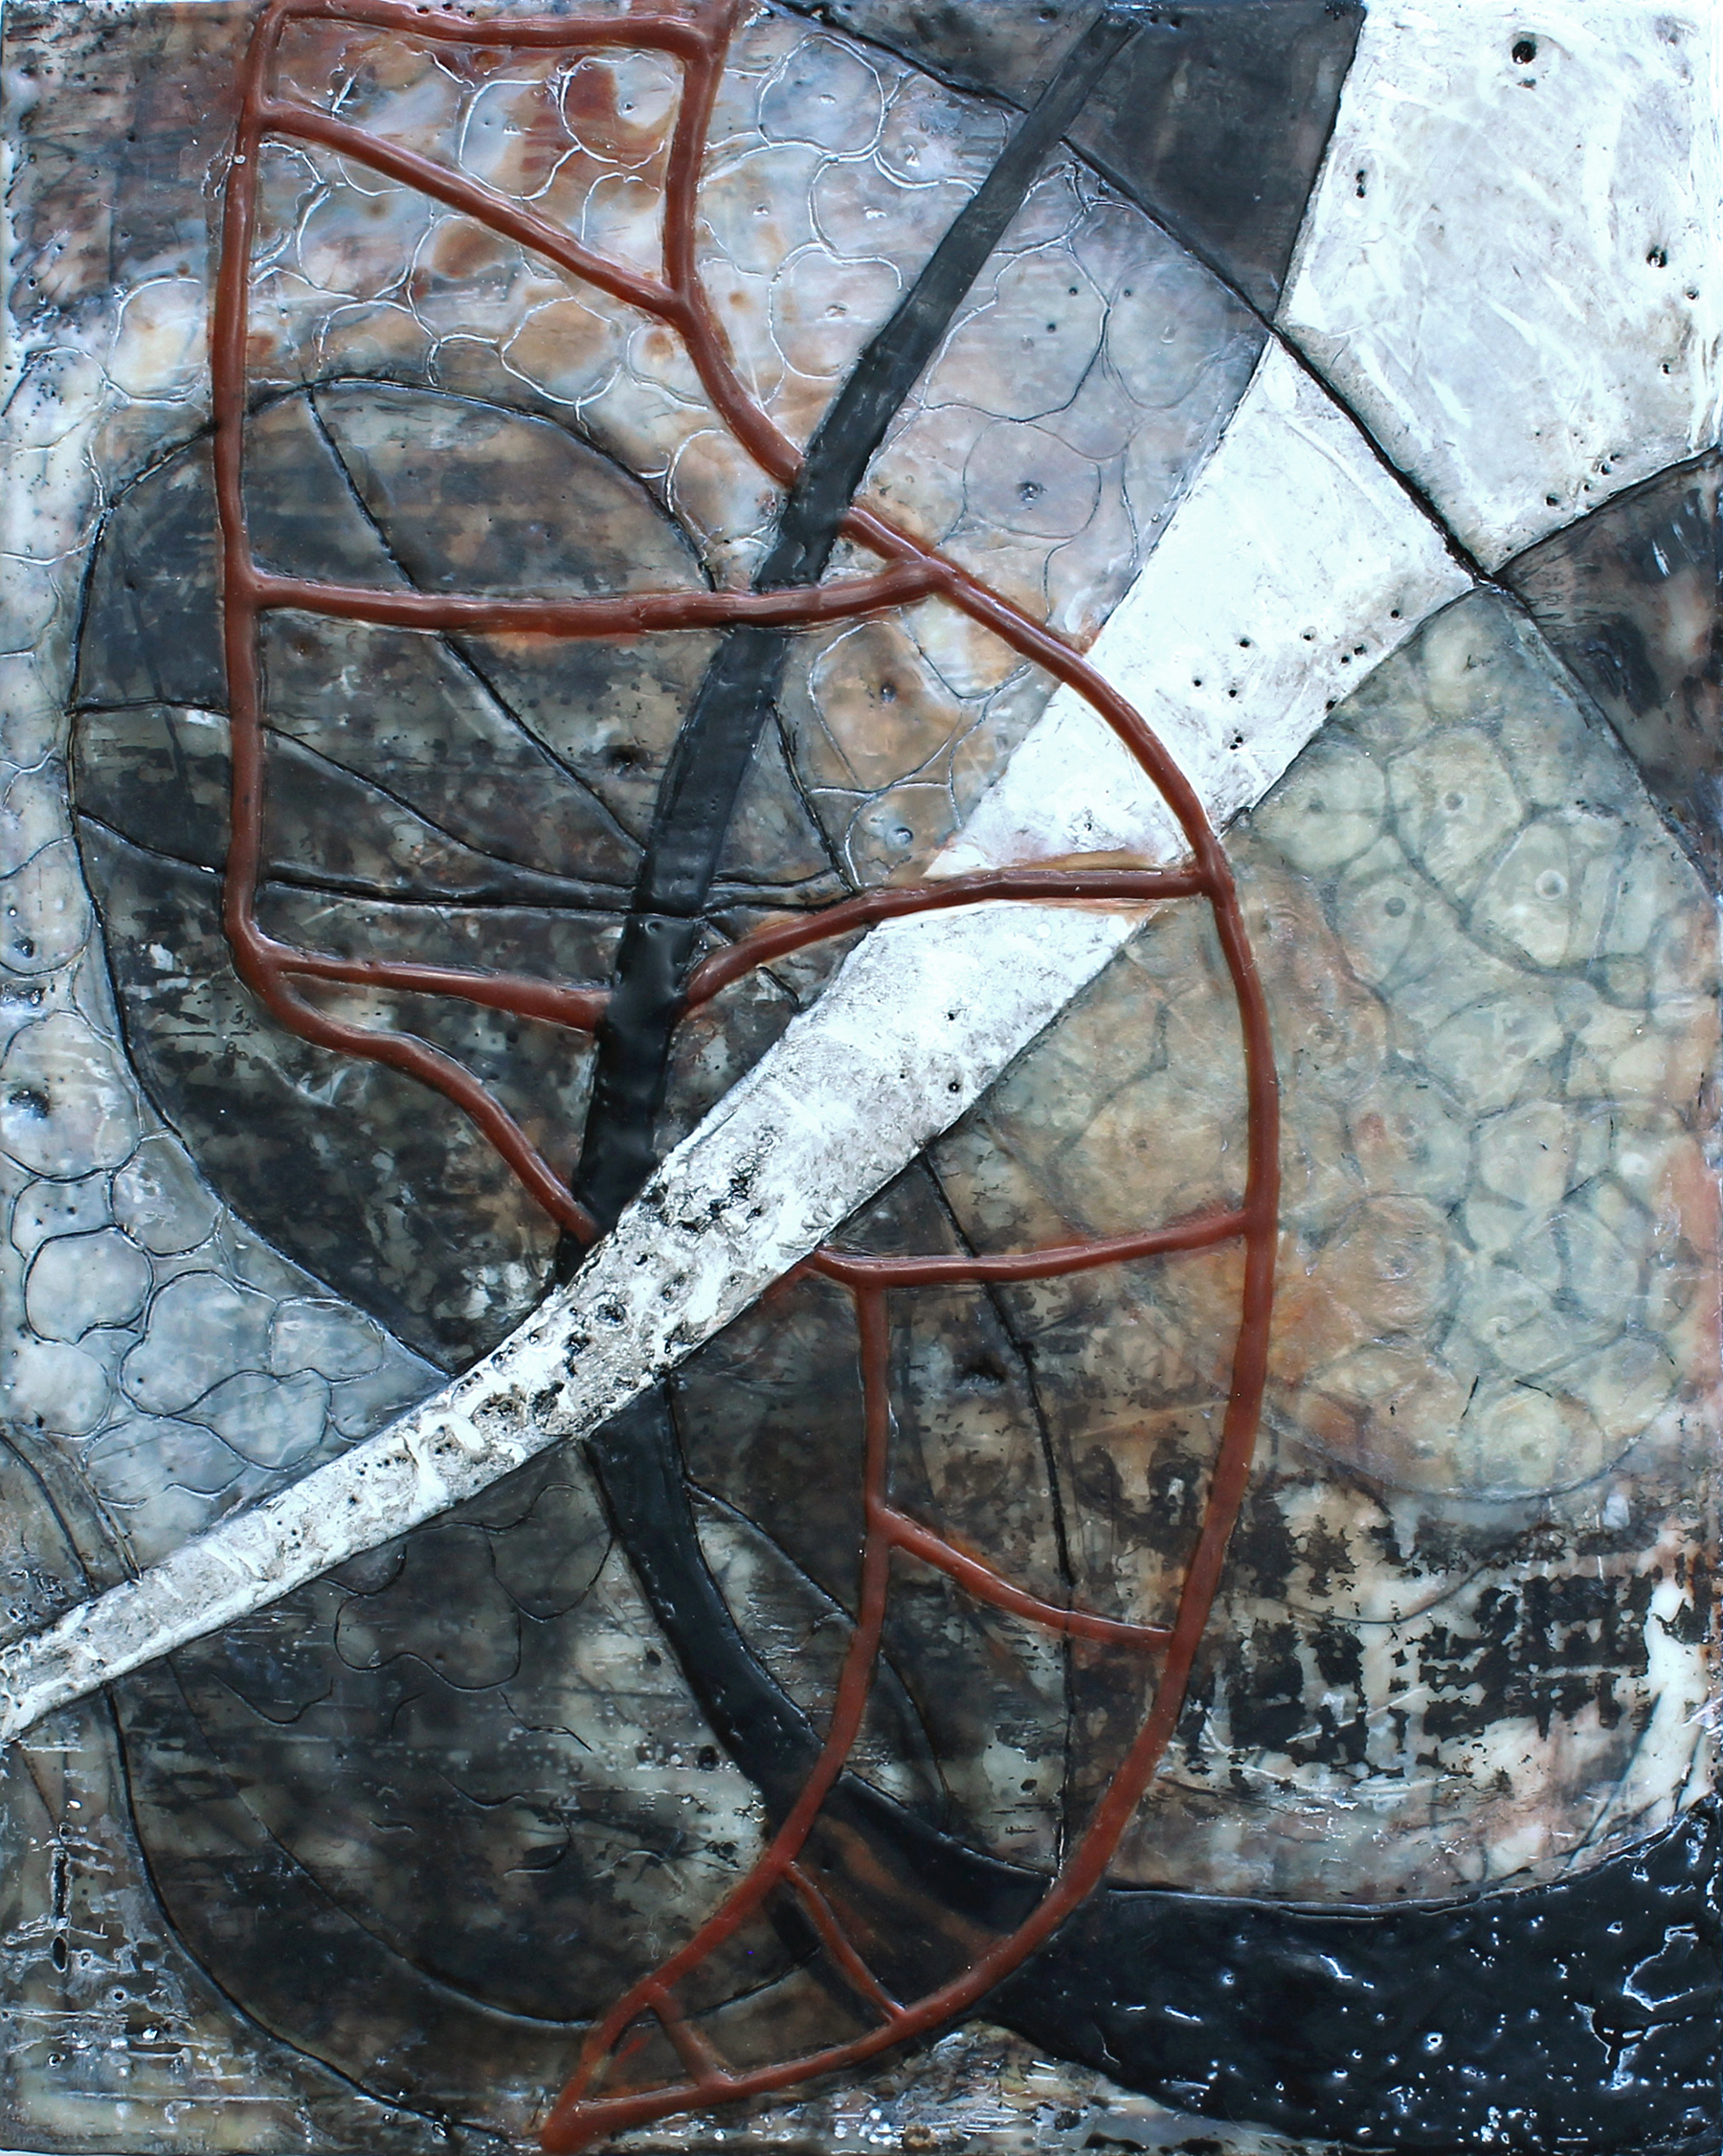 What's This_, 10 x 8, Wax, oil, collagraph on gampi,2014.jpg